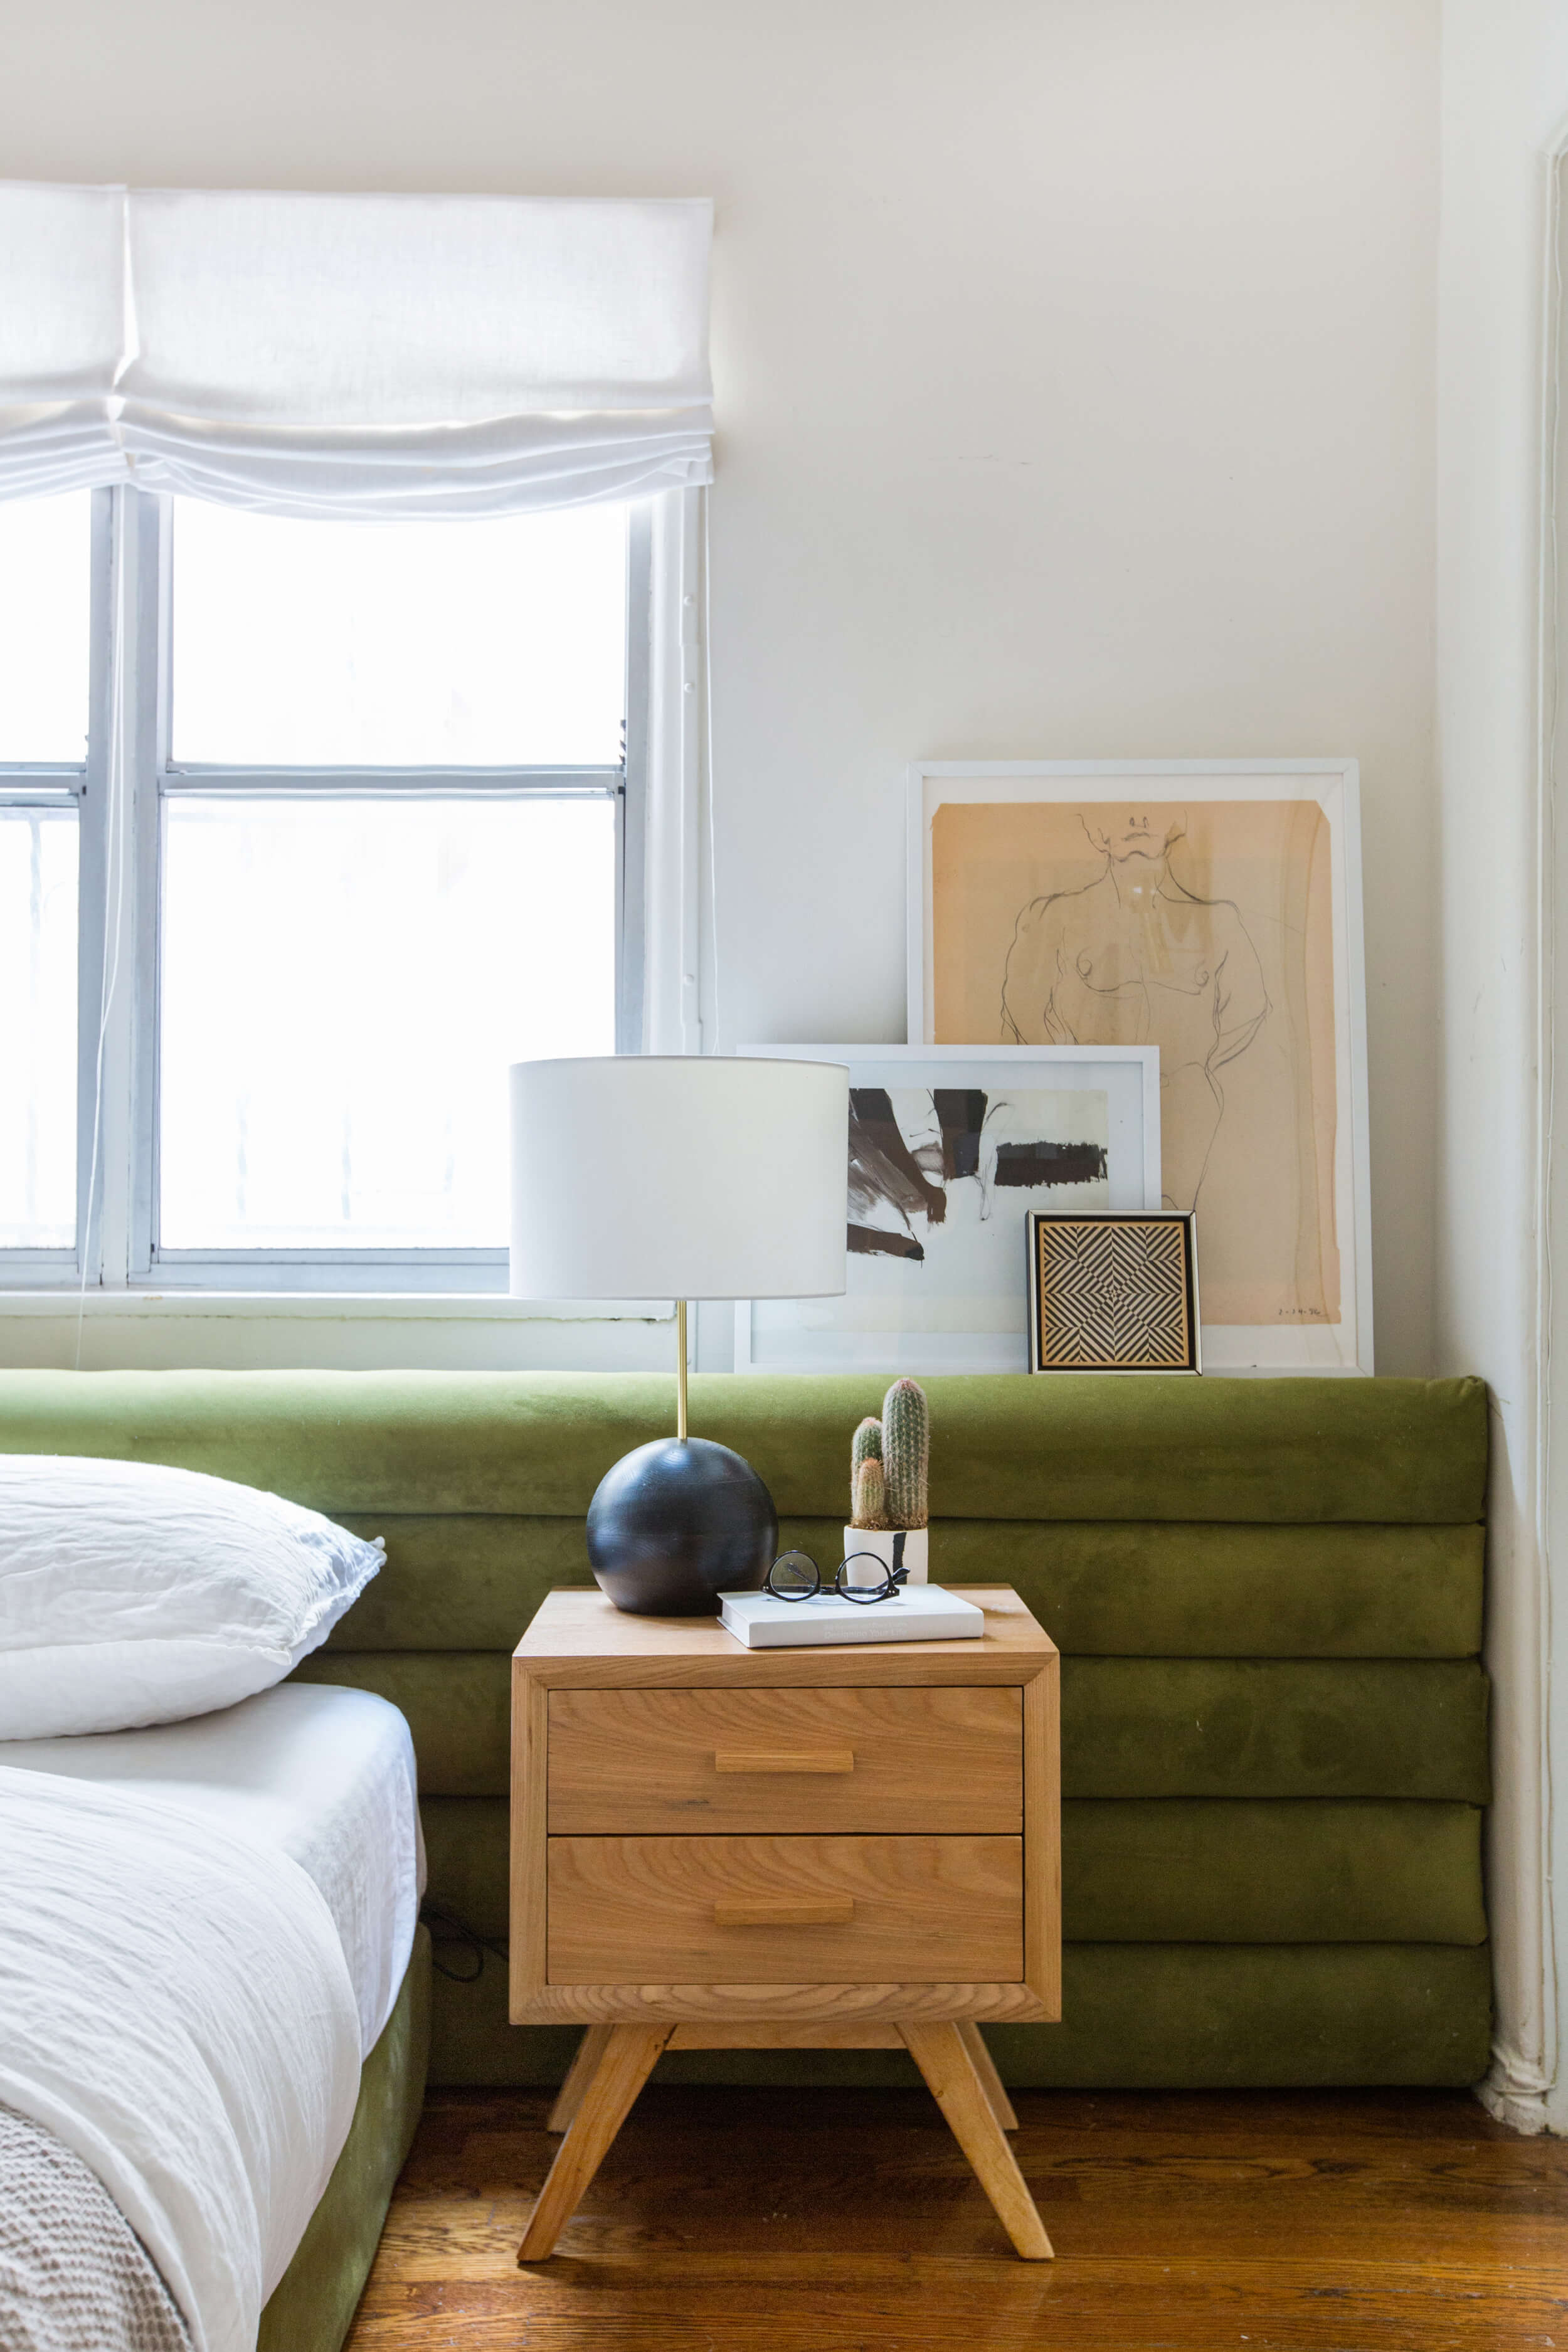 How To Diy A Channel Tufted Headboard According To Two Pros